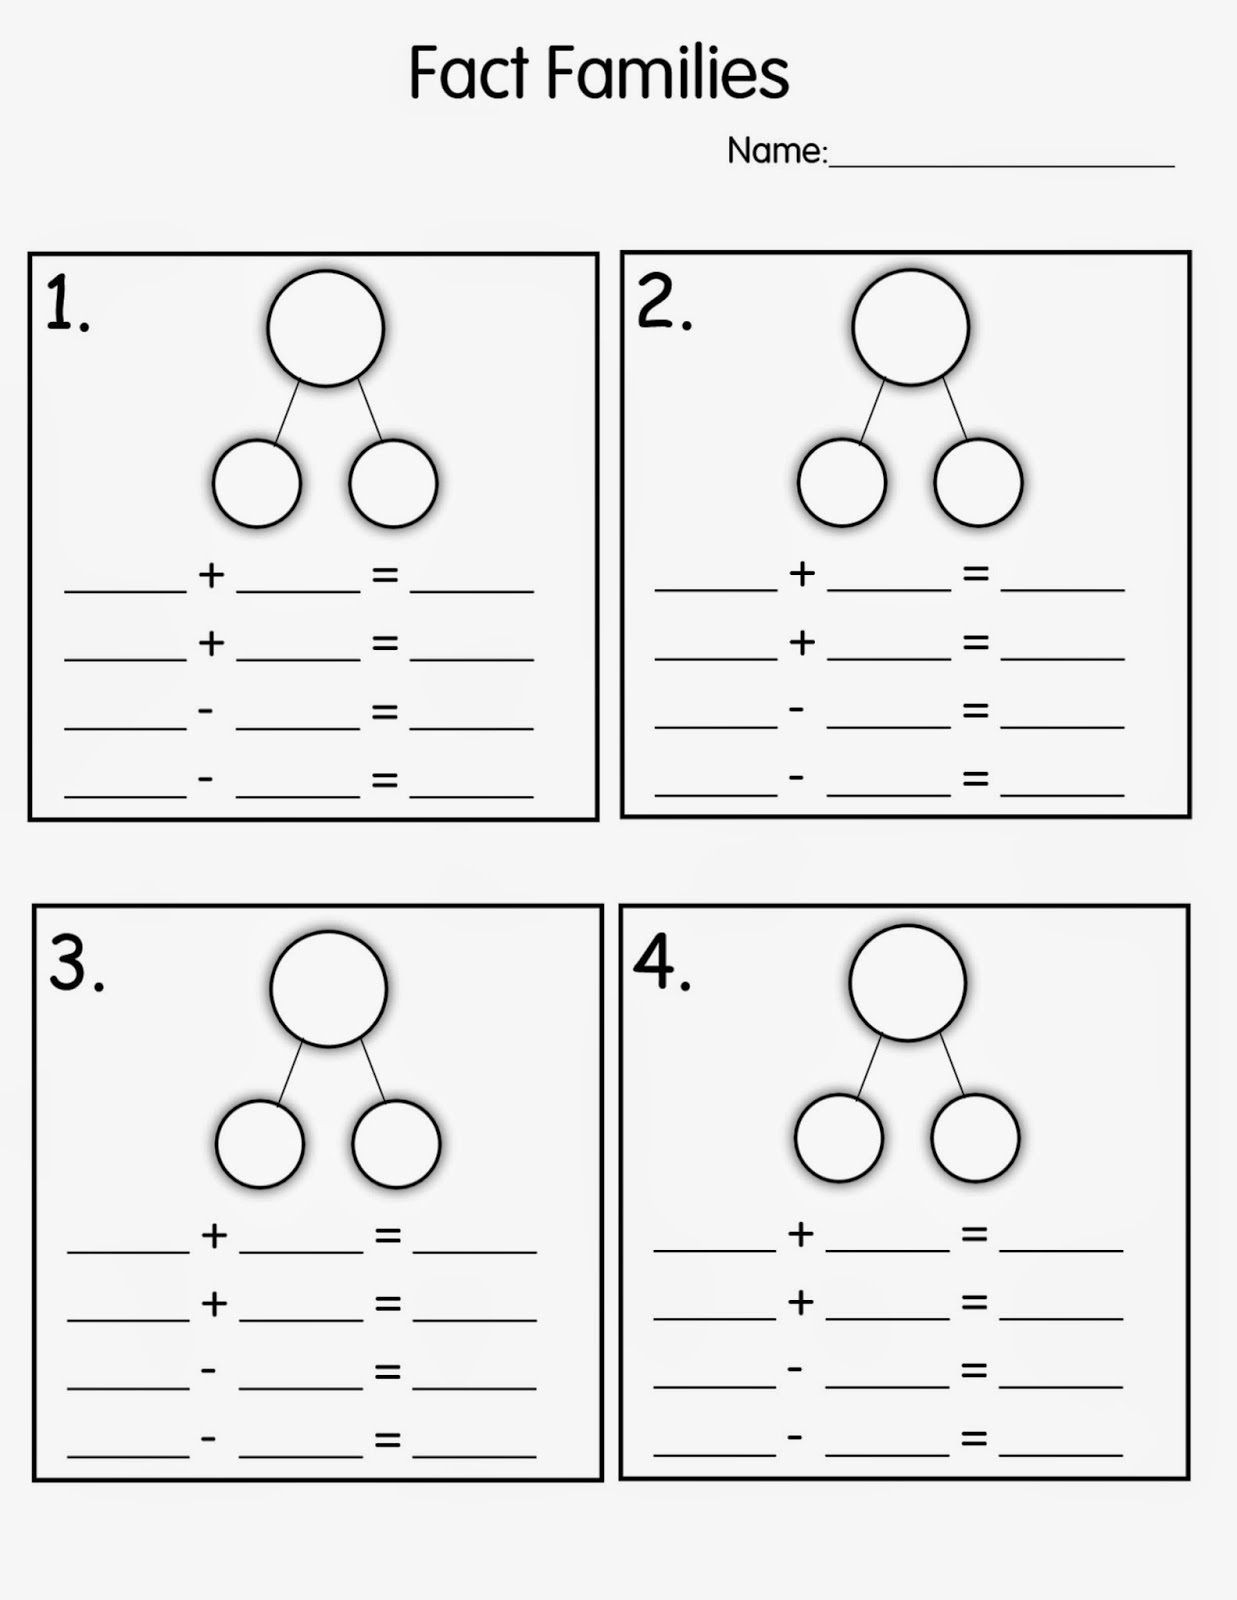 Number Bonds Worksheets 1st Grade Number Family Worksheets for Kids